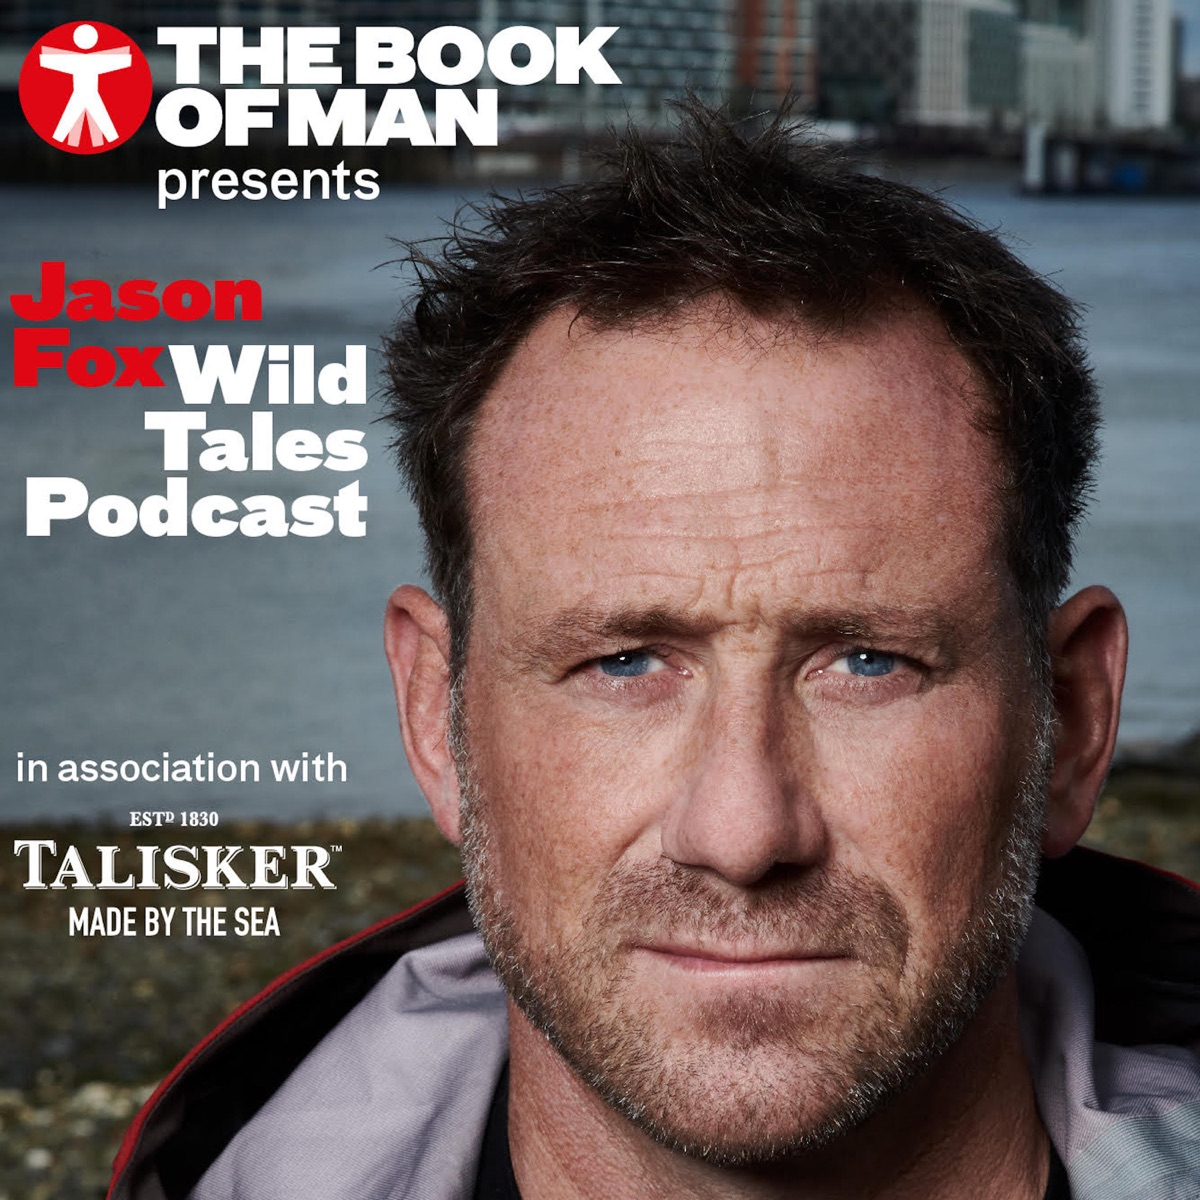 Jason Fox Wild Tales Podcast – Presented by The Book of Man in association with Talisker Whisky